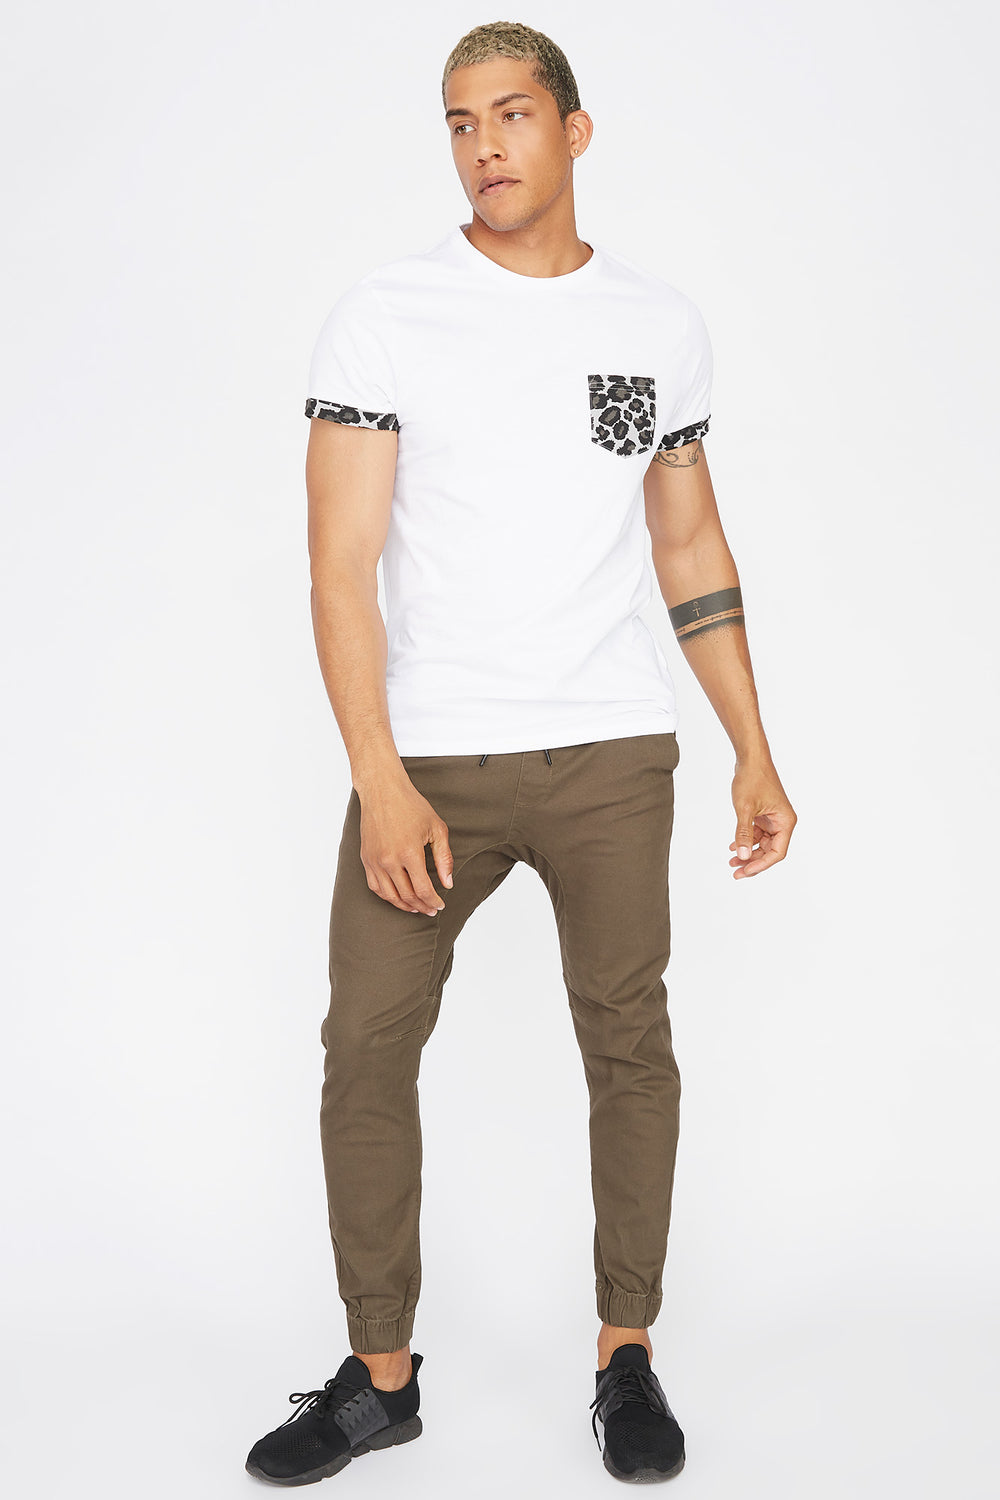 Contrast Animal Printed Pocket T-Shirt White